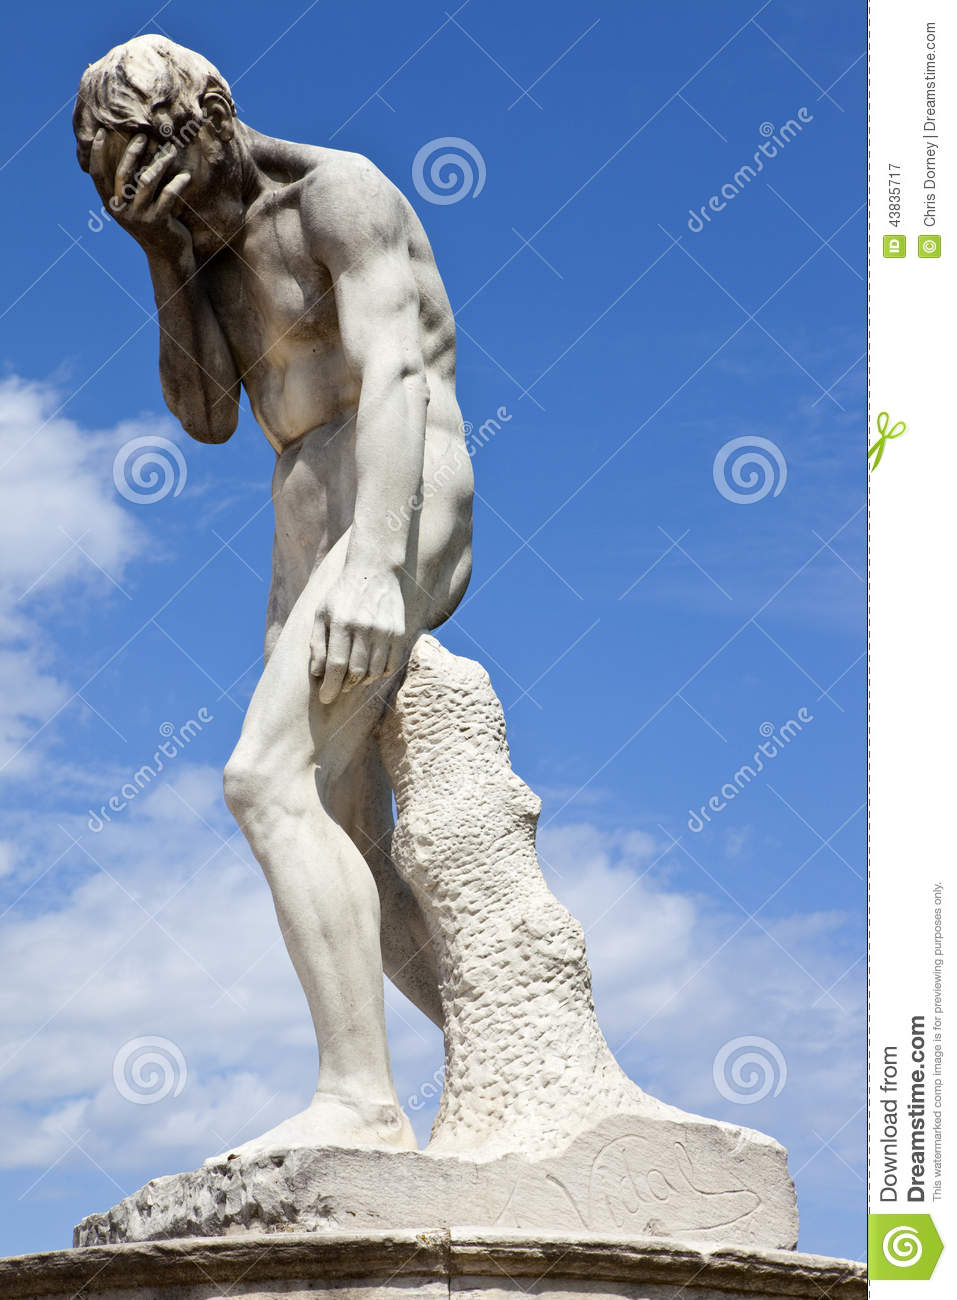 Sculpture in jardin des tuileries stock photo image - Sculpture jardin des tuileries ...